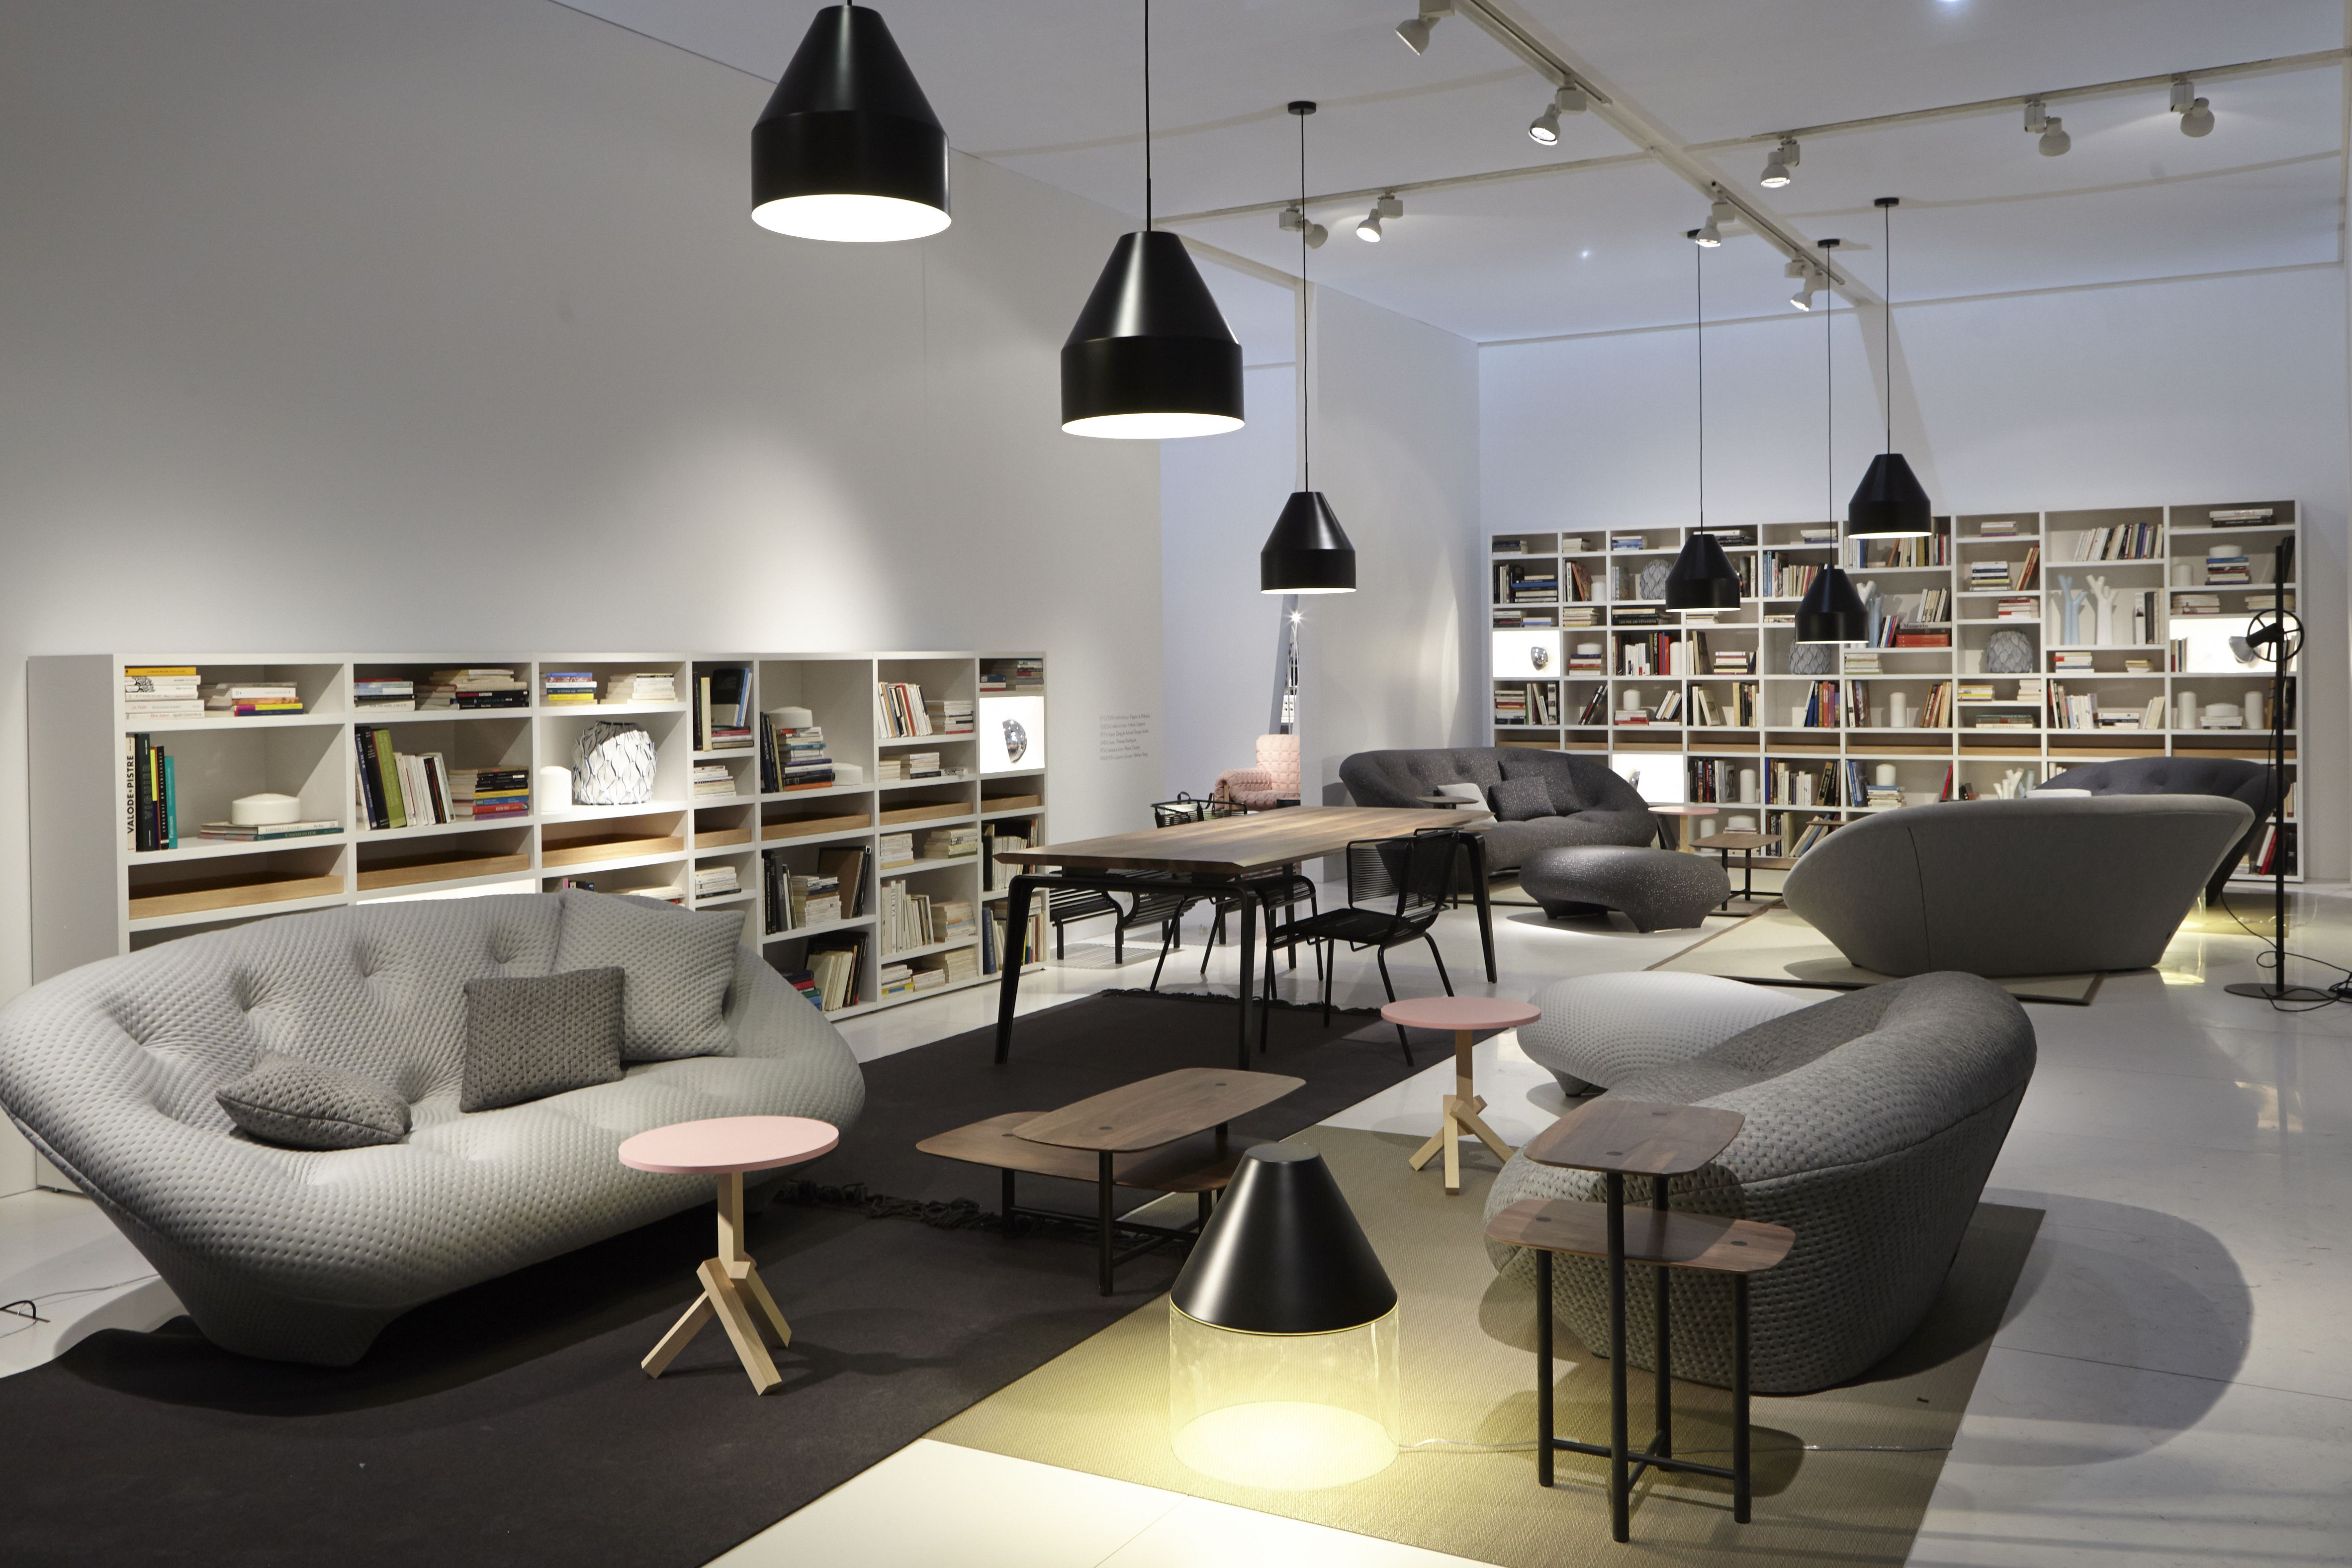 Ligne Roset introduces the new collection at Imm Cologne and Maison & Objet Paris, 2014